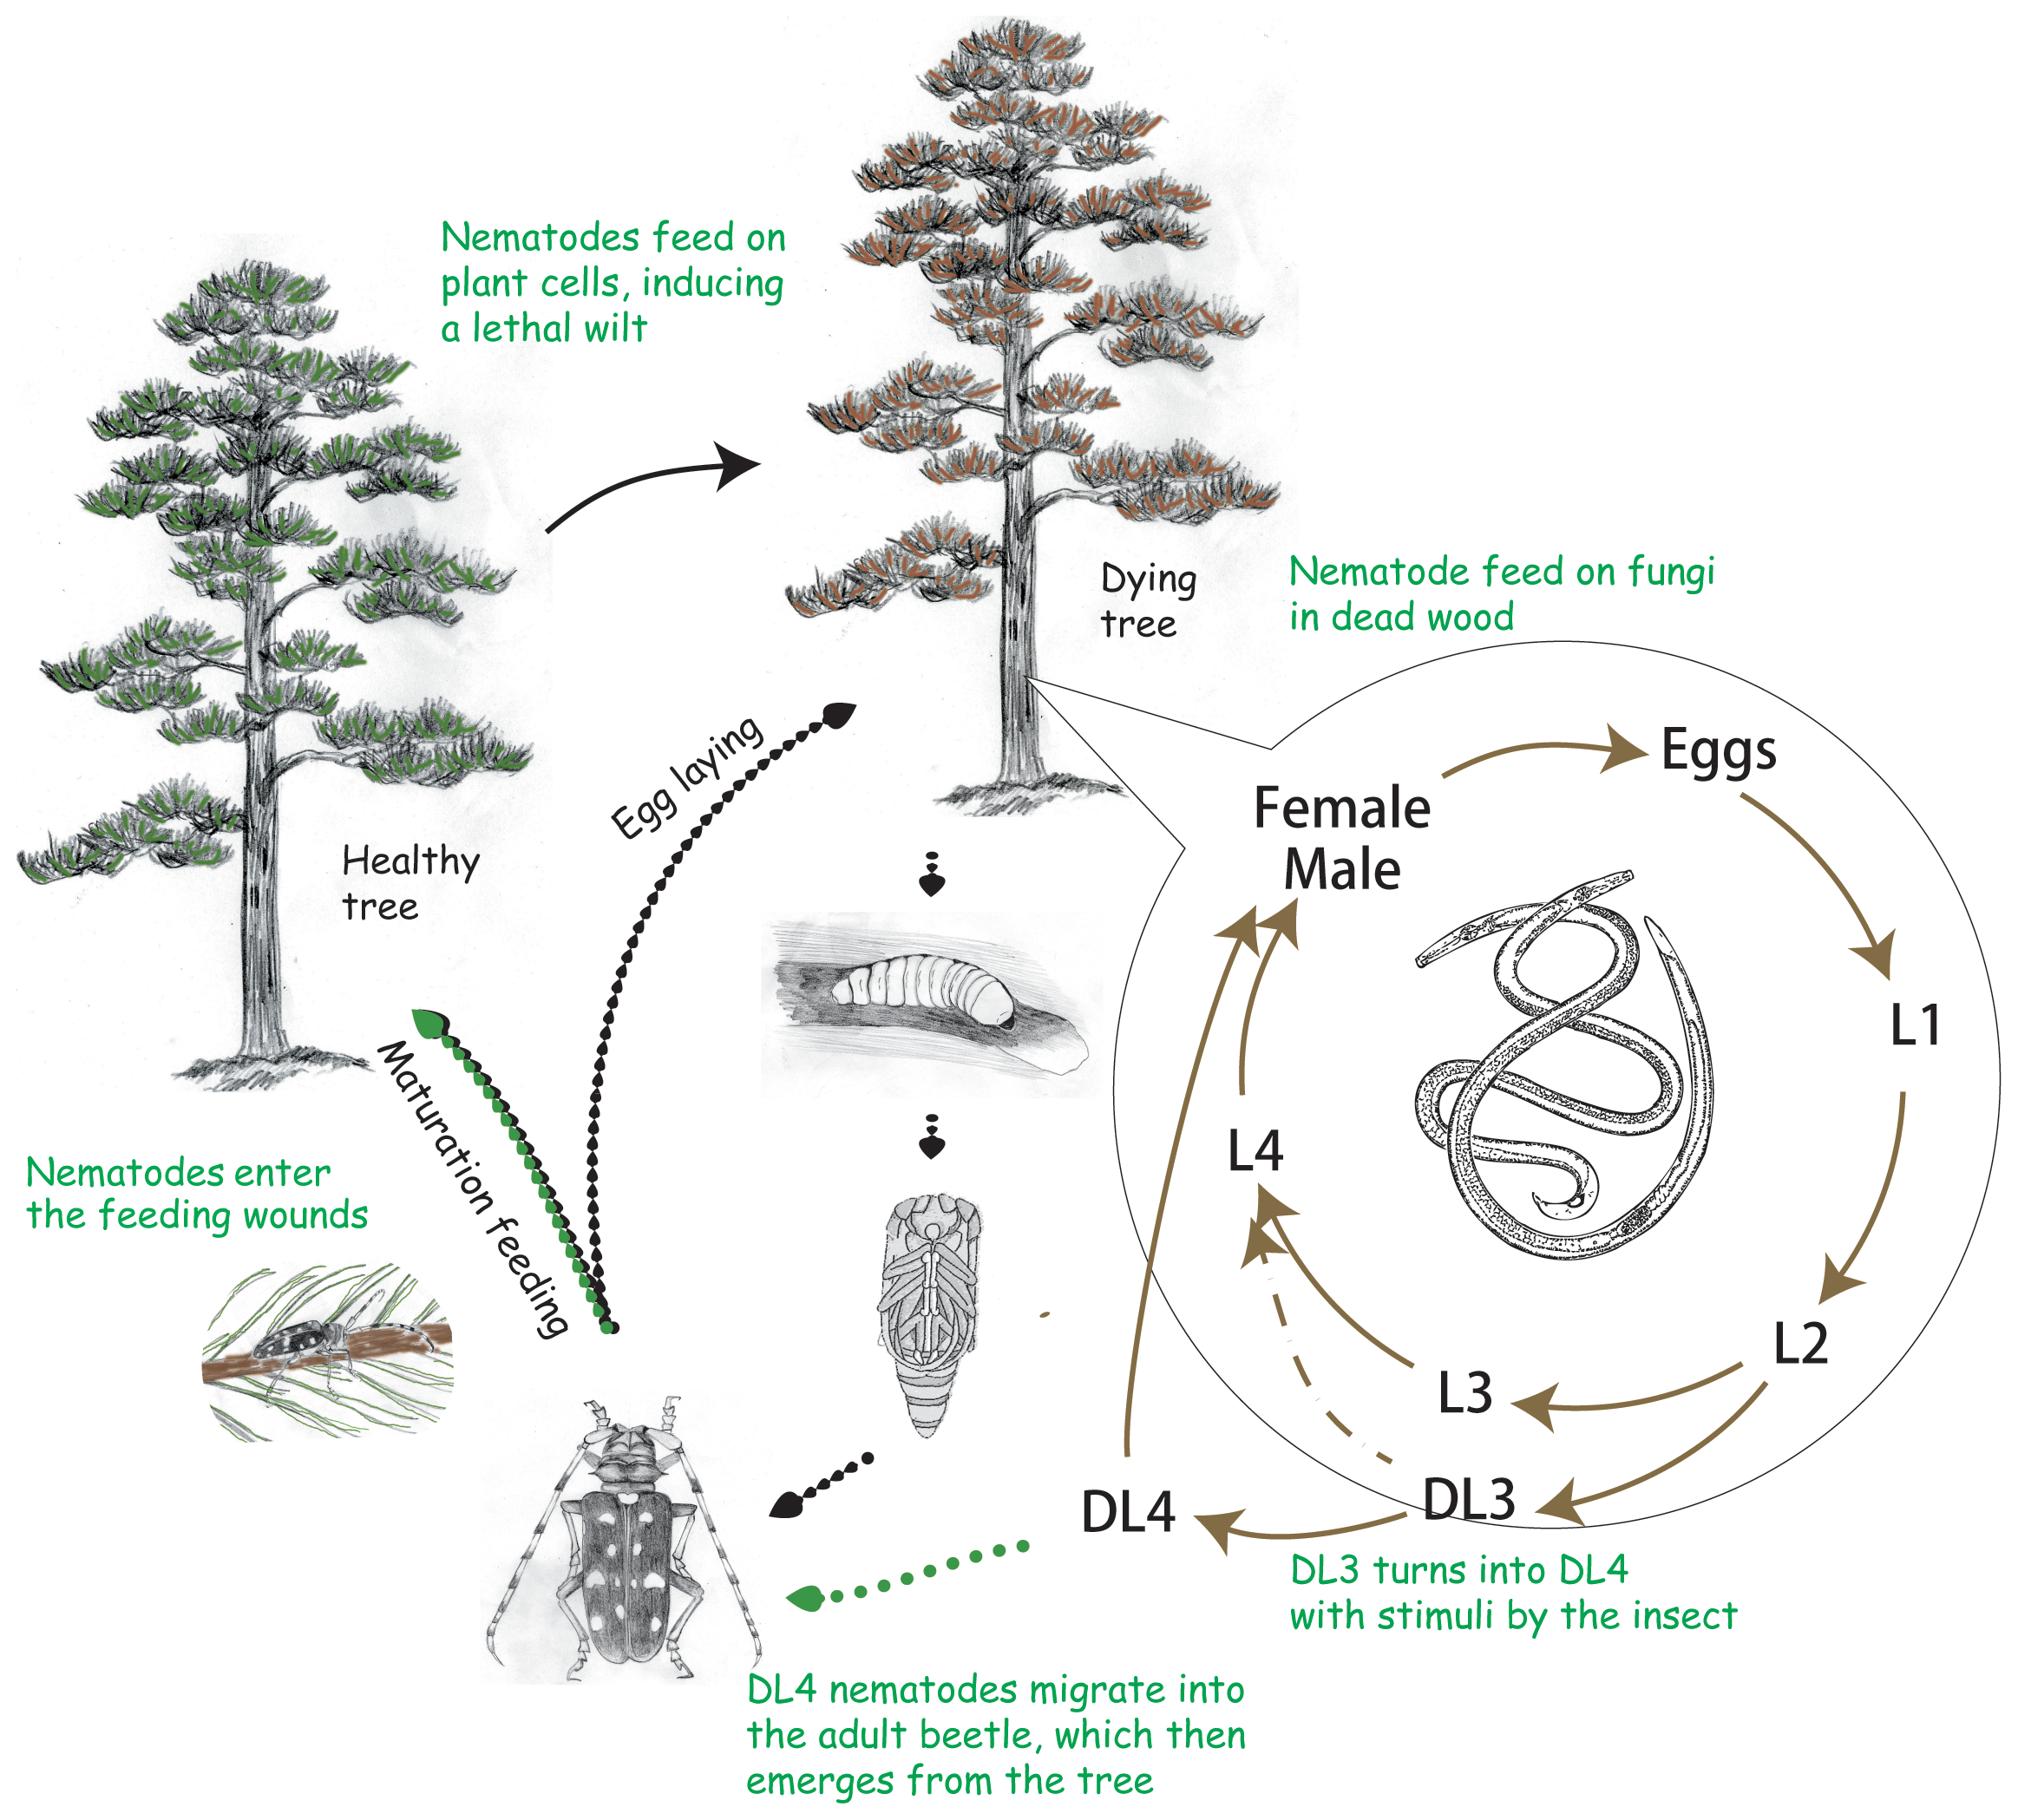 The life cycle of the pine wood nematode <i>Bursaphelenchus xylophilus</i>.